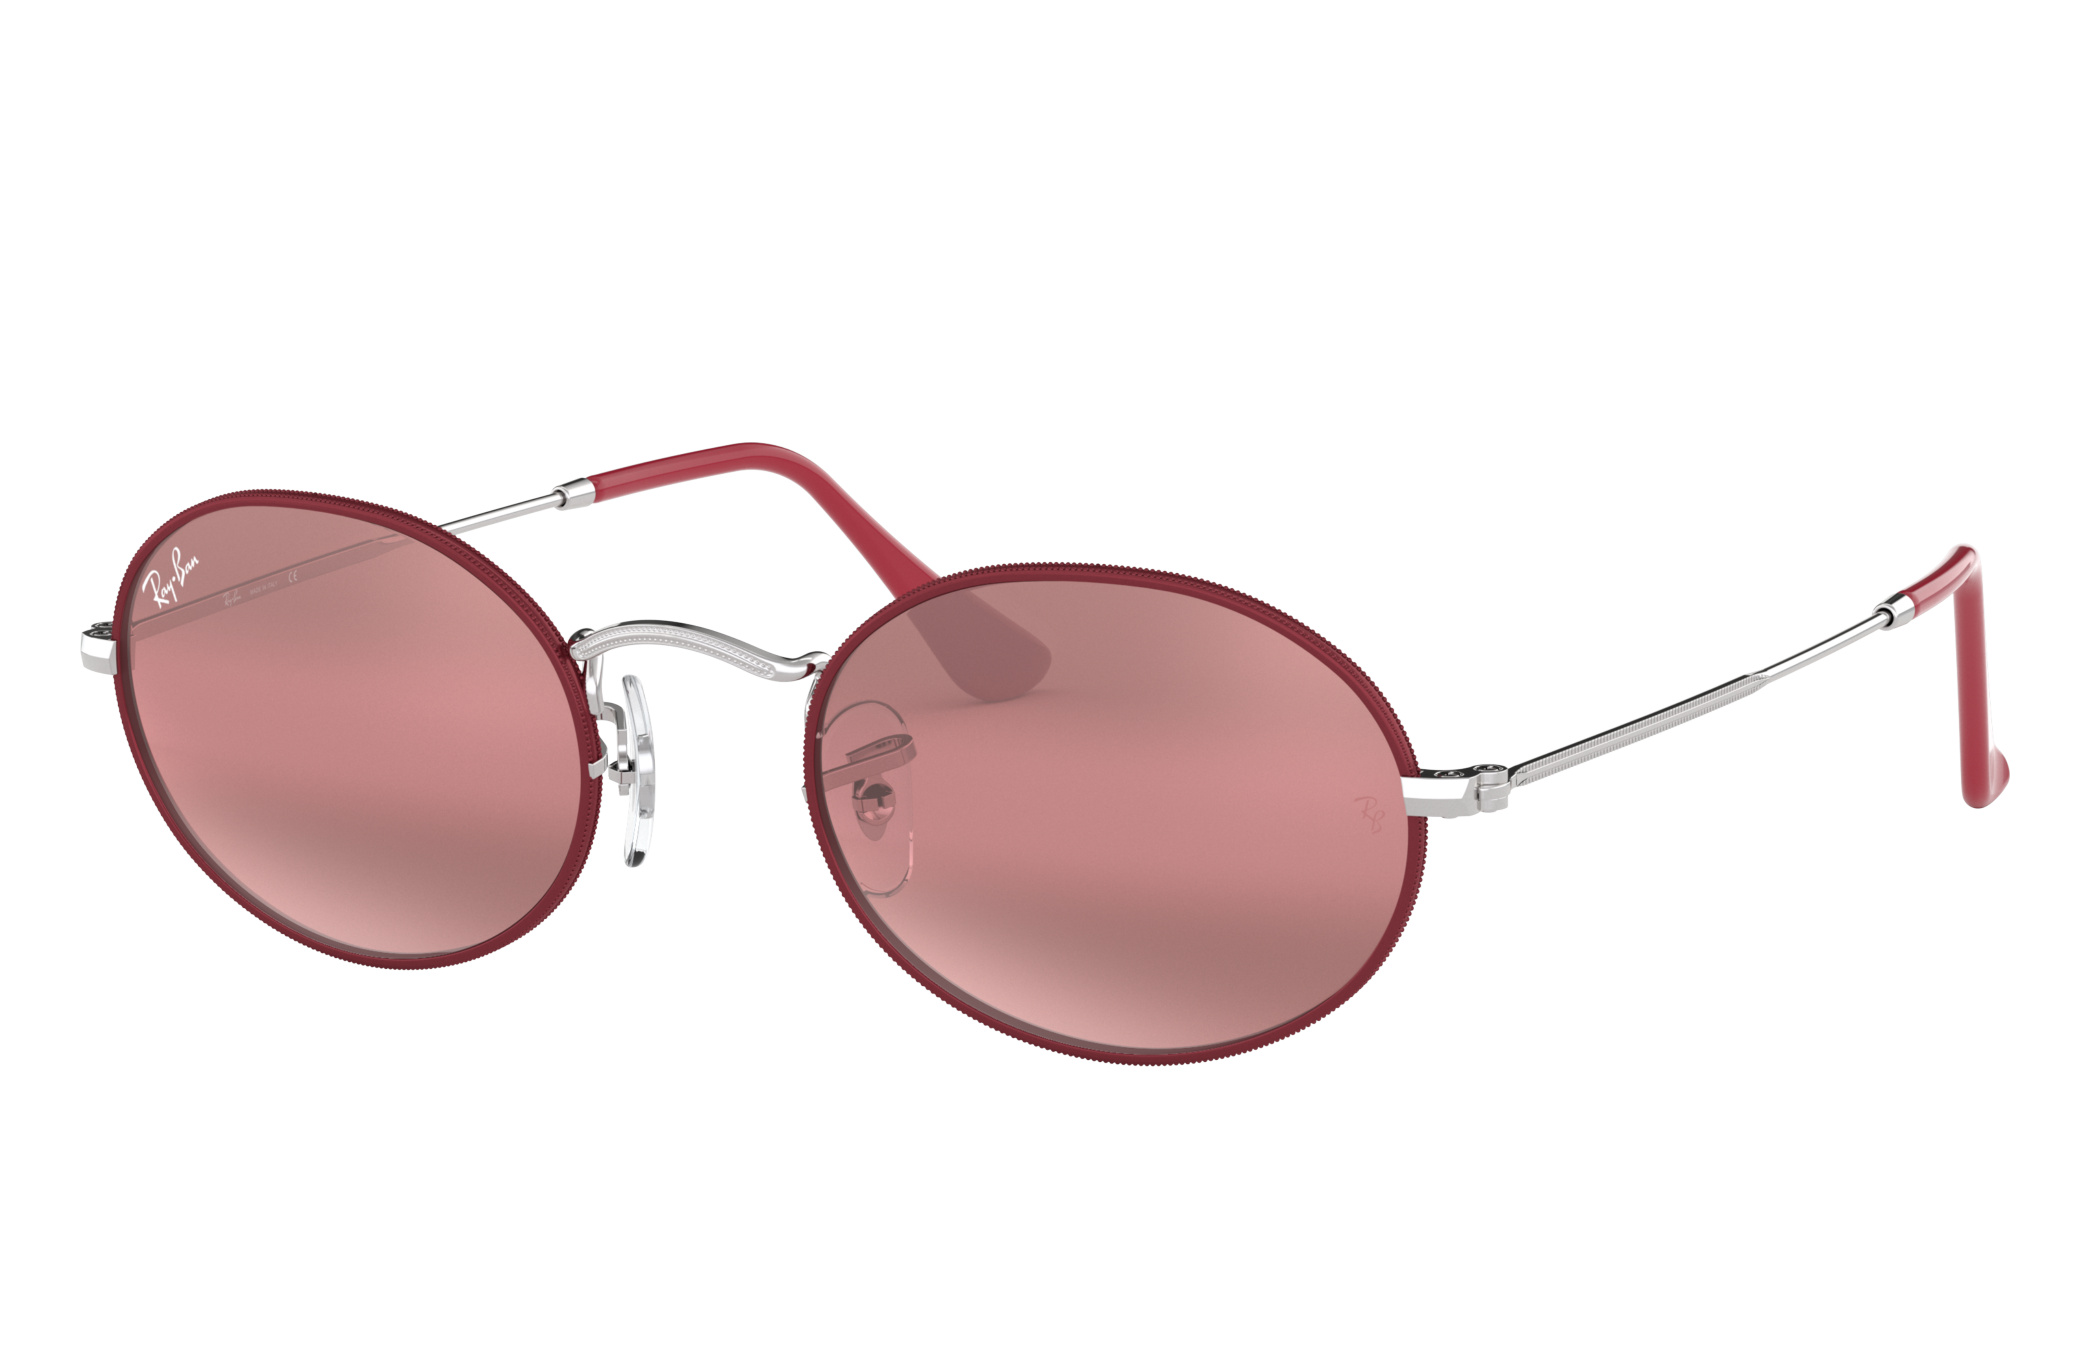 Ray-Ban Oval Silver, Violet Lenses - RB3547